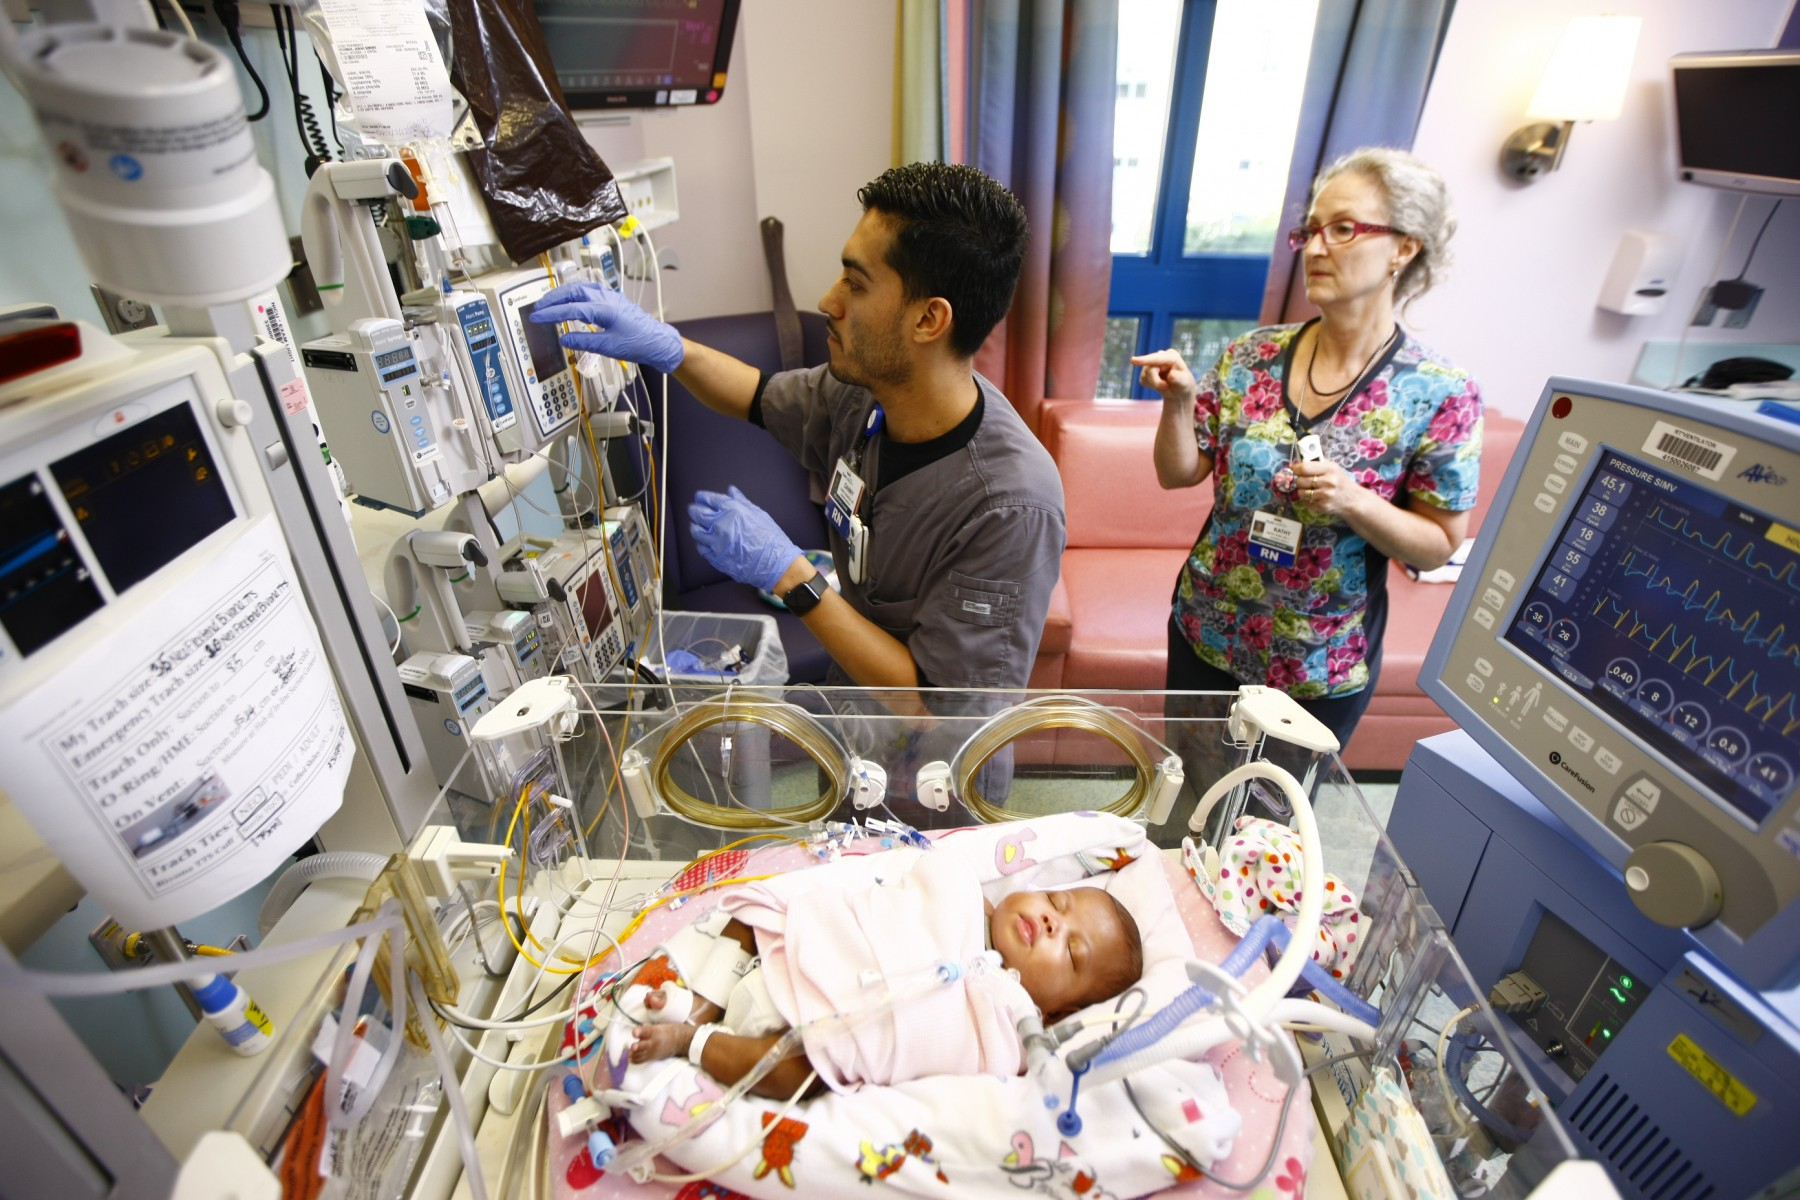 Cook Childrens First North Texas Nicu To Receive Level Iv Designation